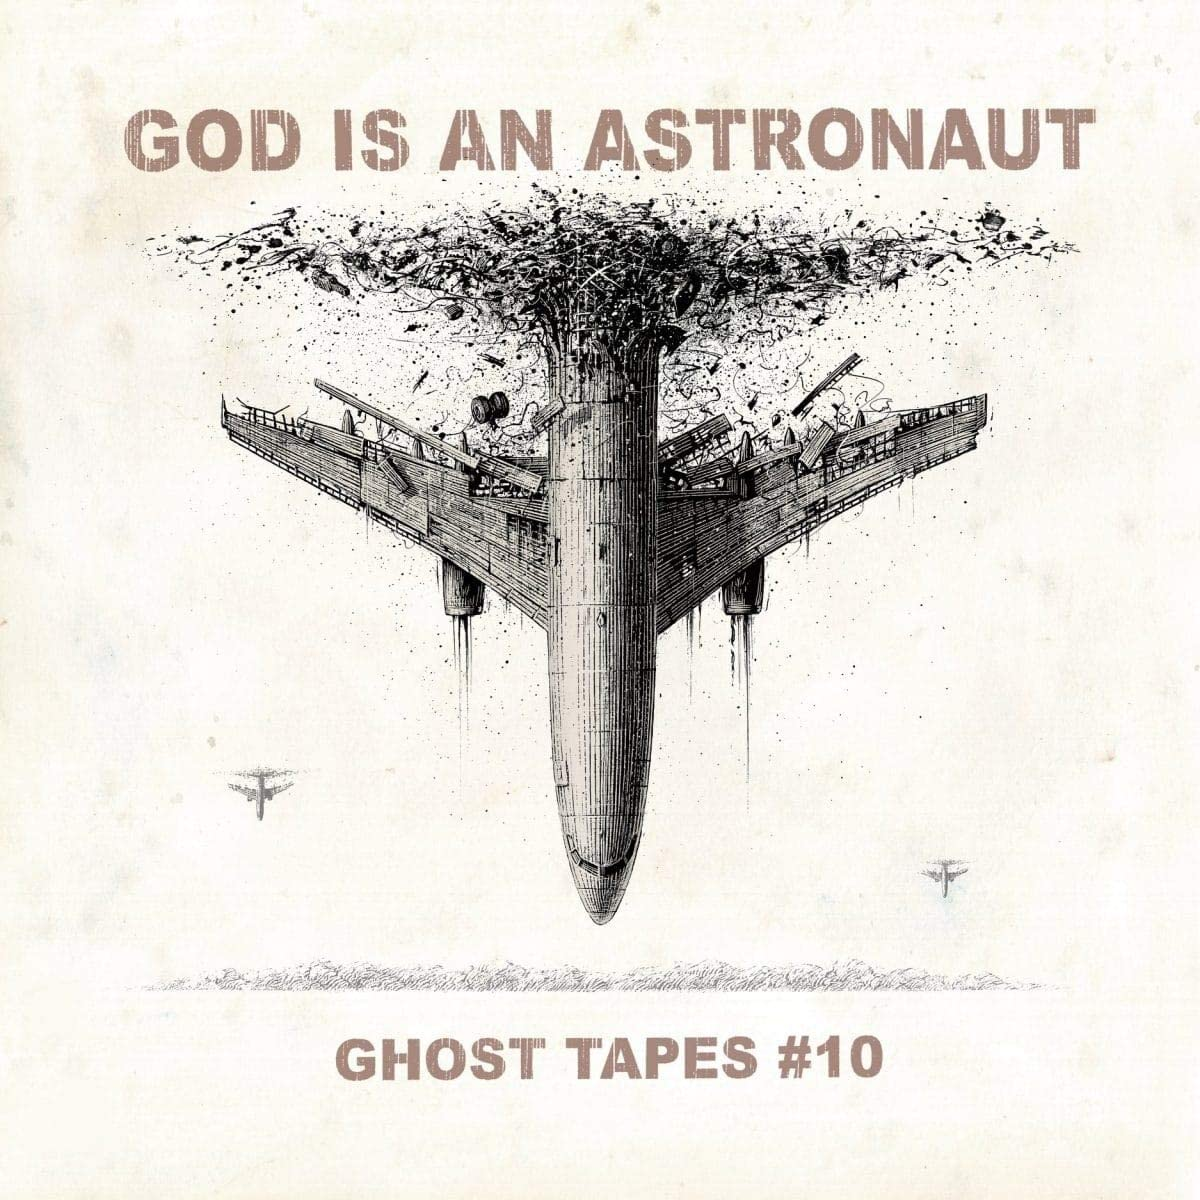 GOD IS AN ASTRONAUT - GHOST TAPES #10 (CD)